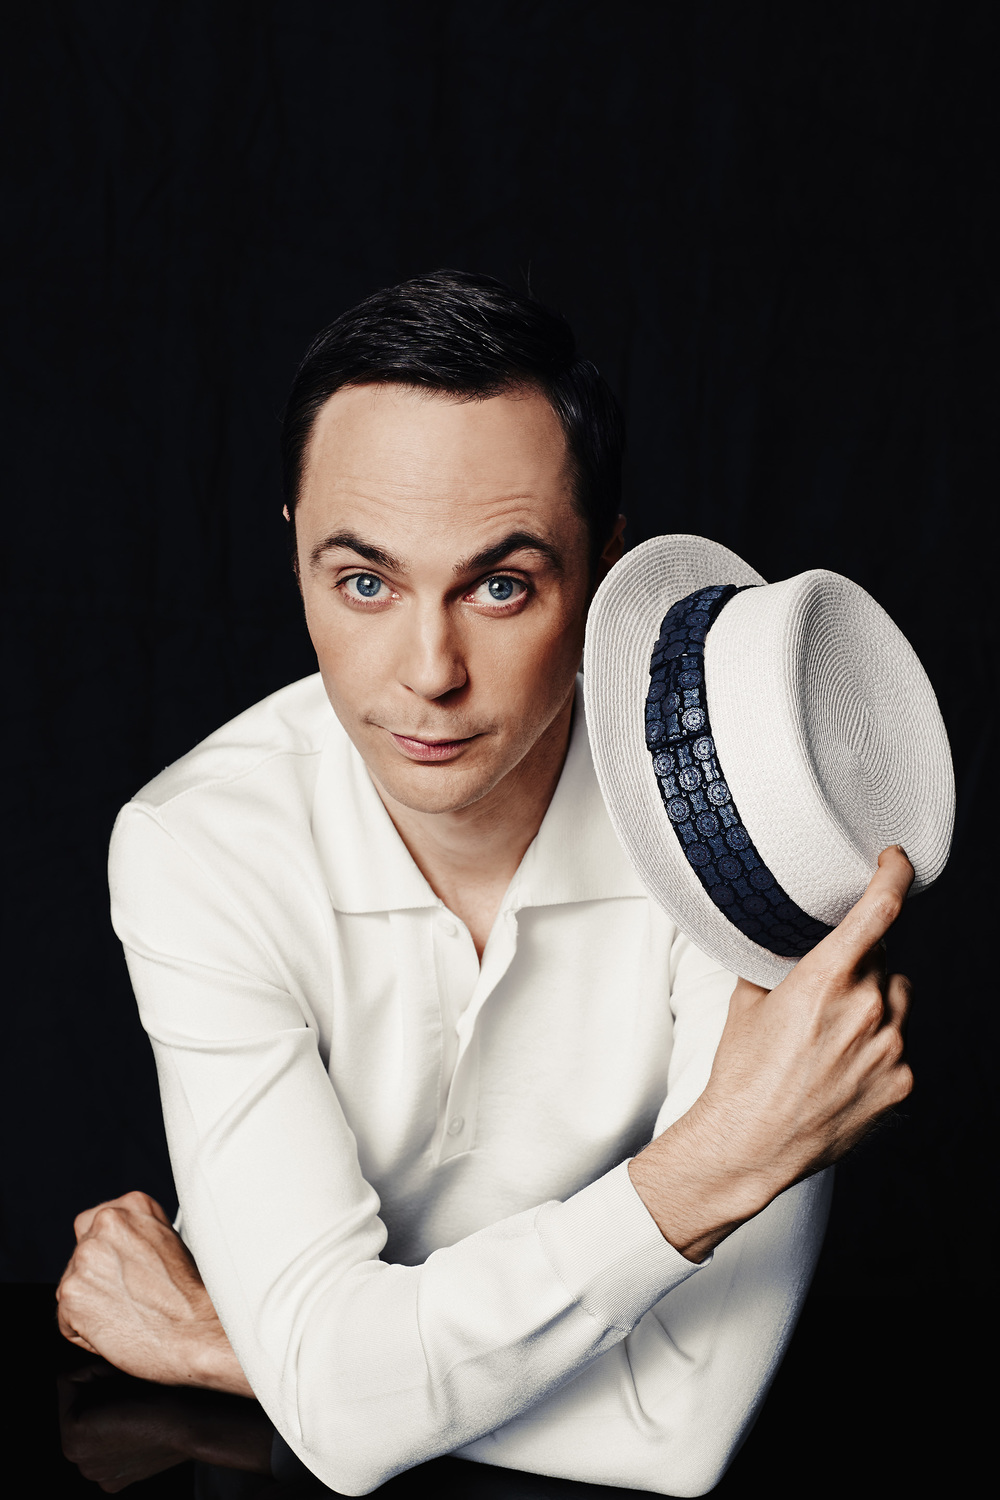 OUT100_08_JIM_PARSONS_125_fnl_rgb.jpg